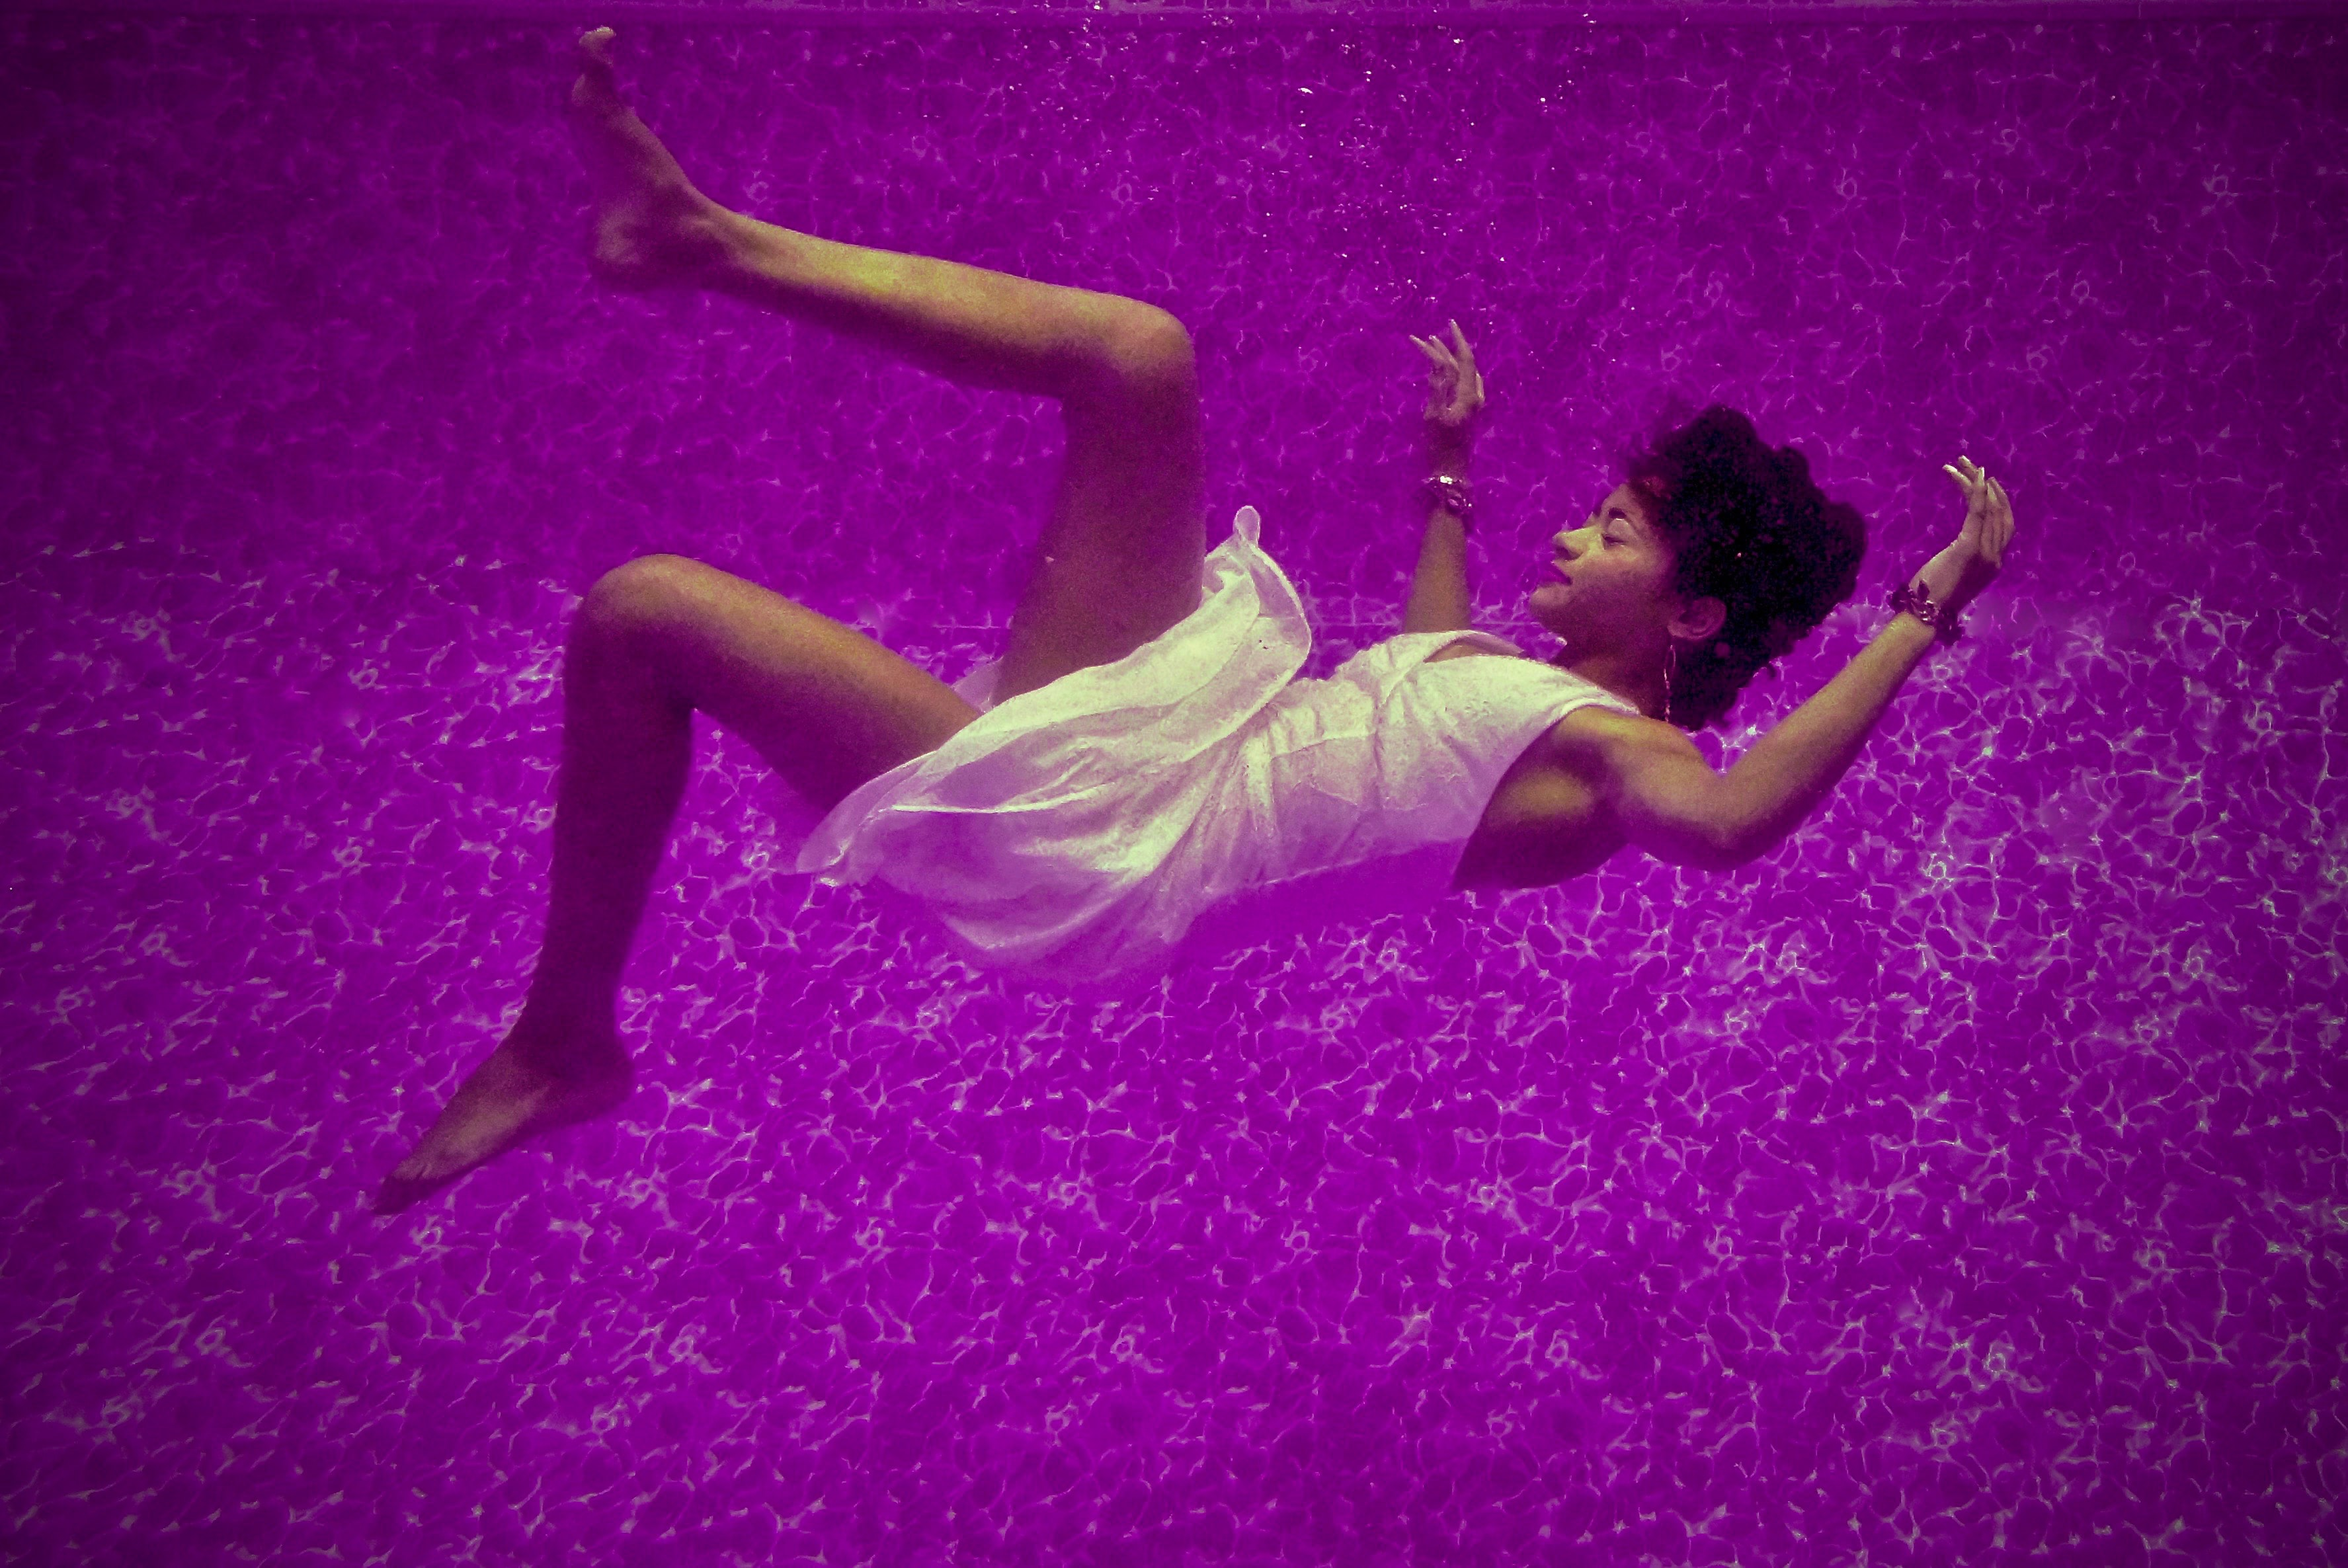 woman falls on purple surface